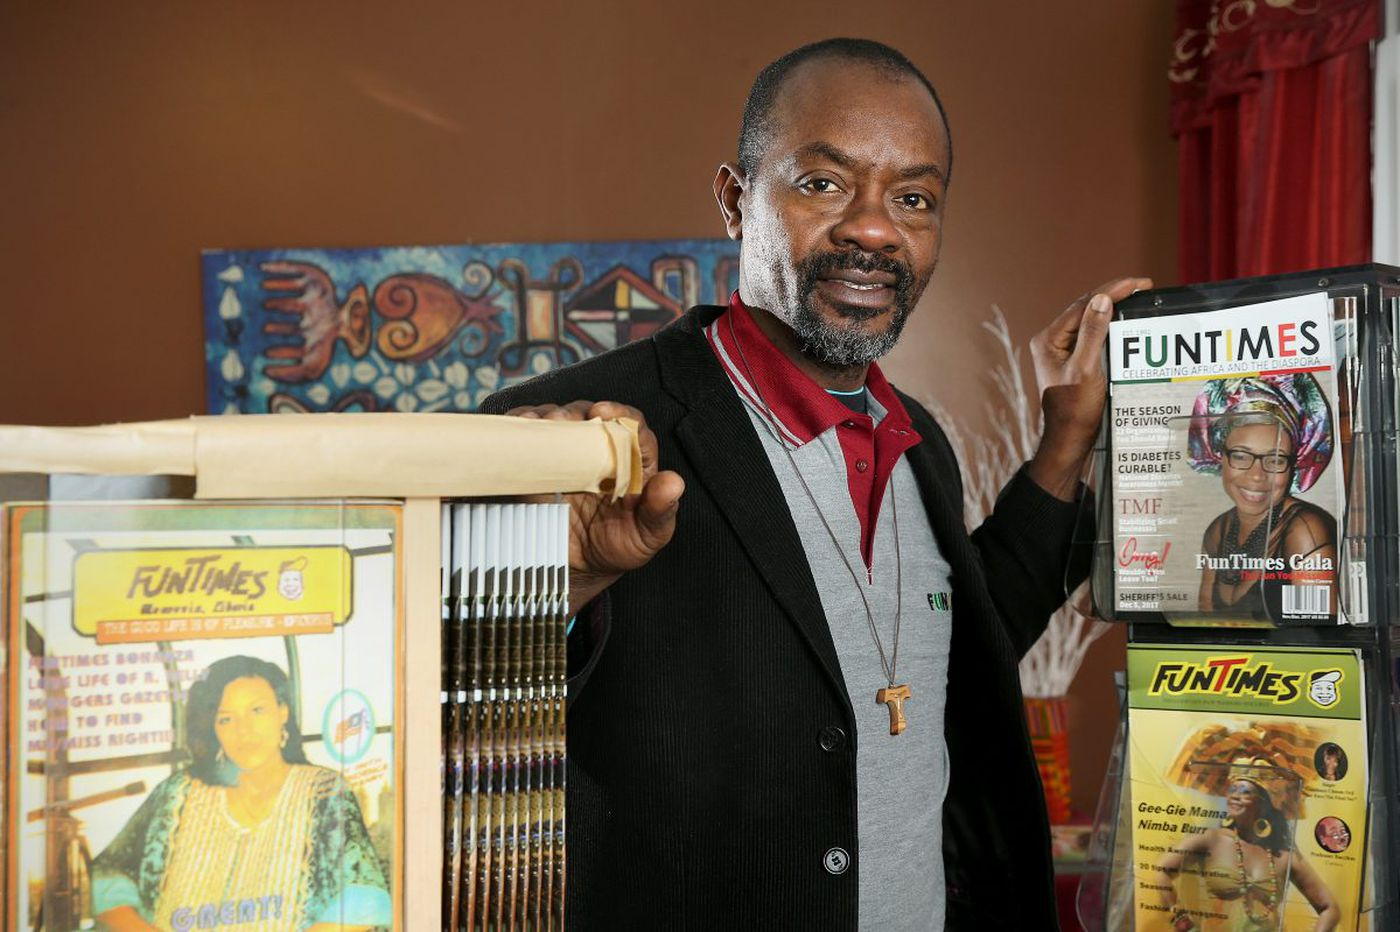 During the Liberian Civil War he started a humor magazine. Now 'FunTimes' comes from West Philly